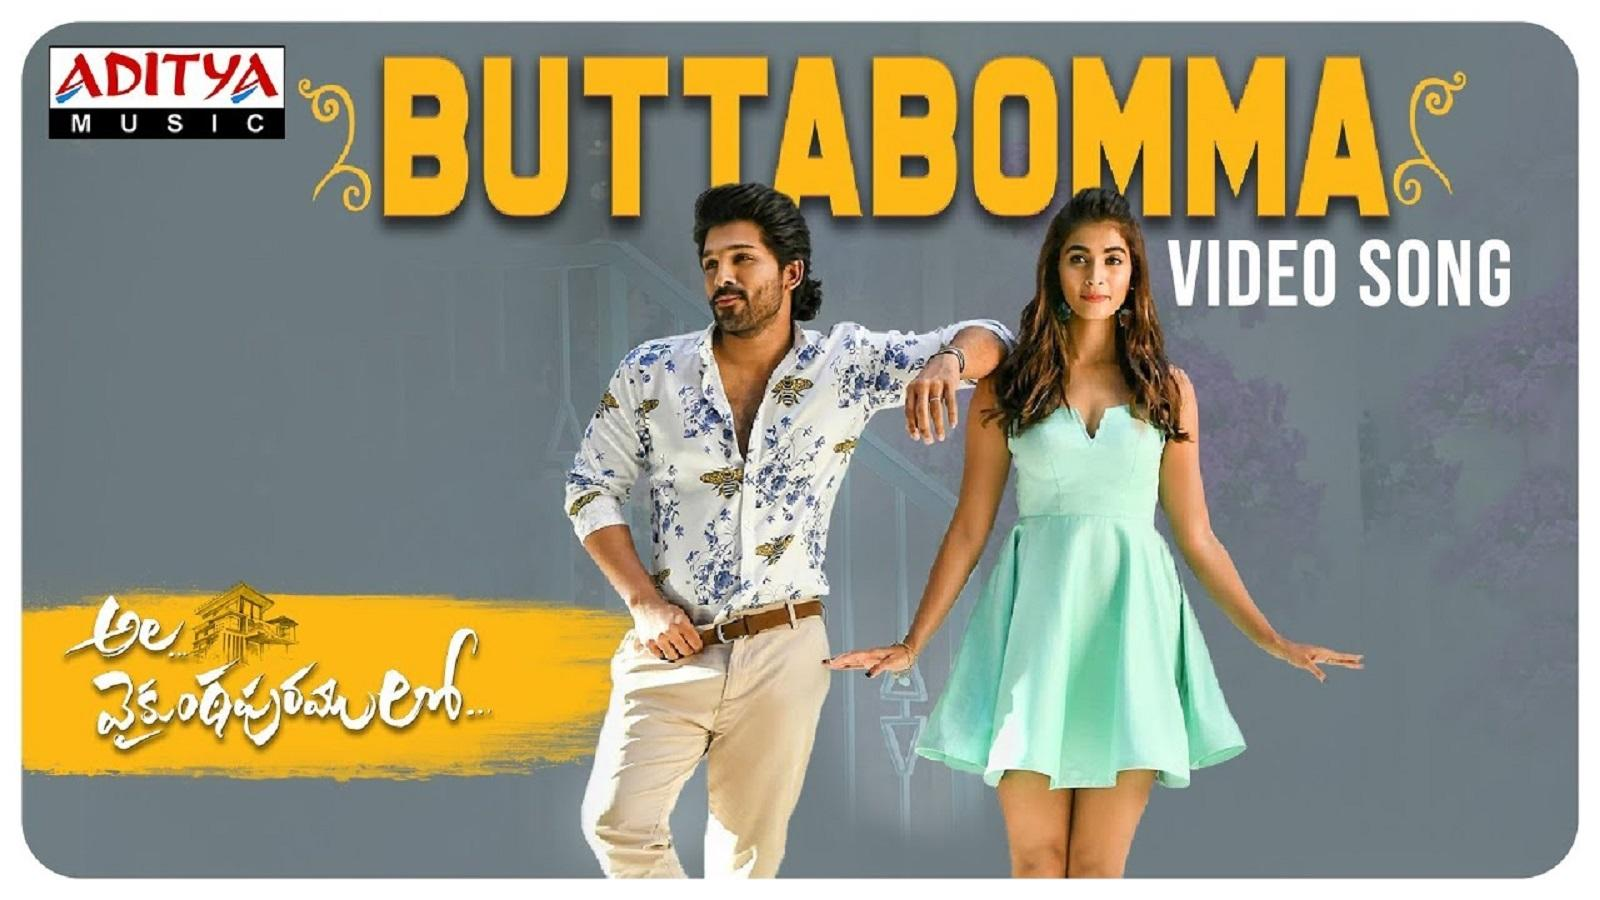 Telugu Song Videos 2020: Latest Telugu Video Song 'ButtaBomma' from  'Trivikram' Ft. Allu Arjun and Pooja Hegde